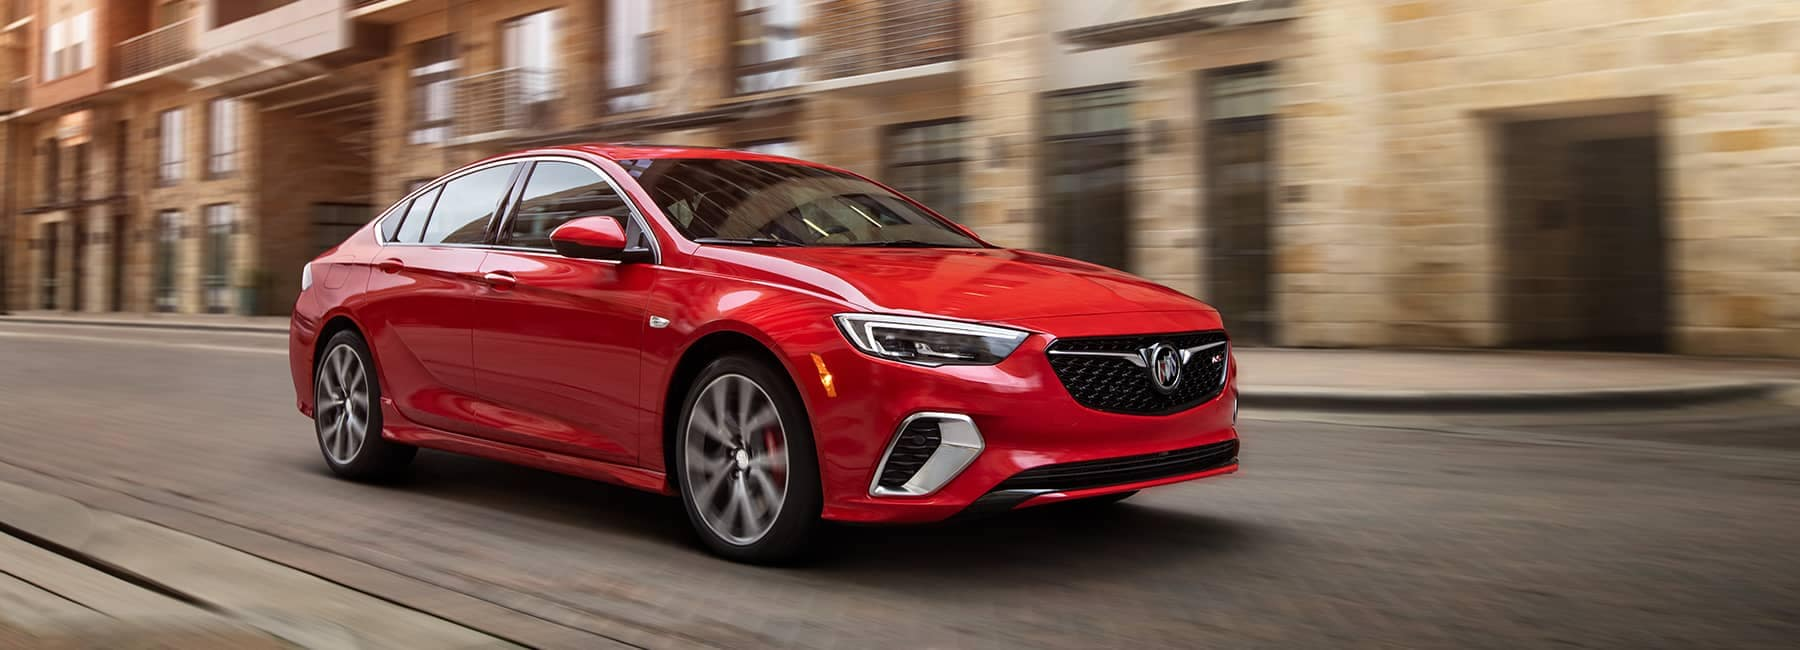 Red 2020 Buick Regal Sportback